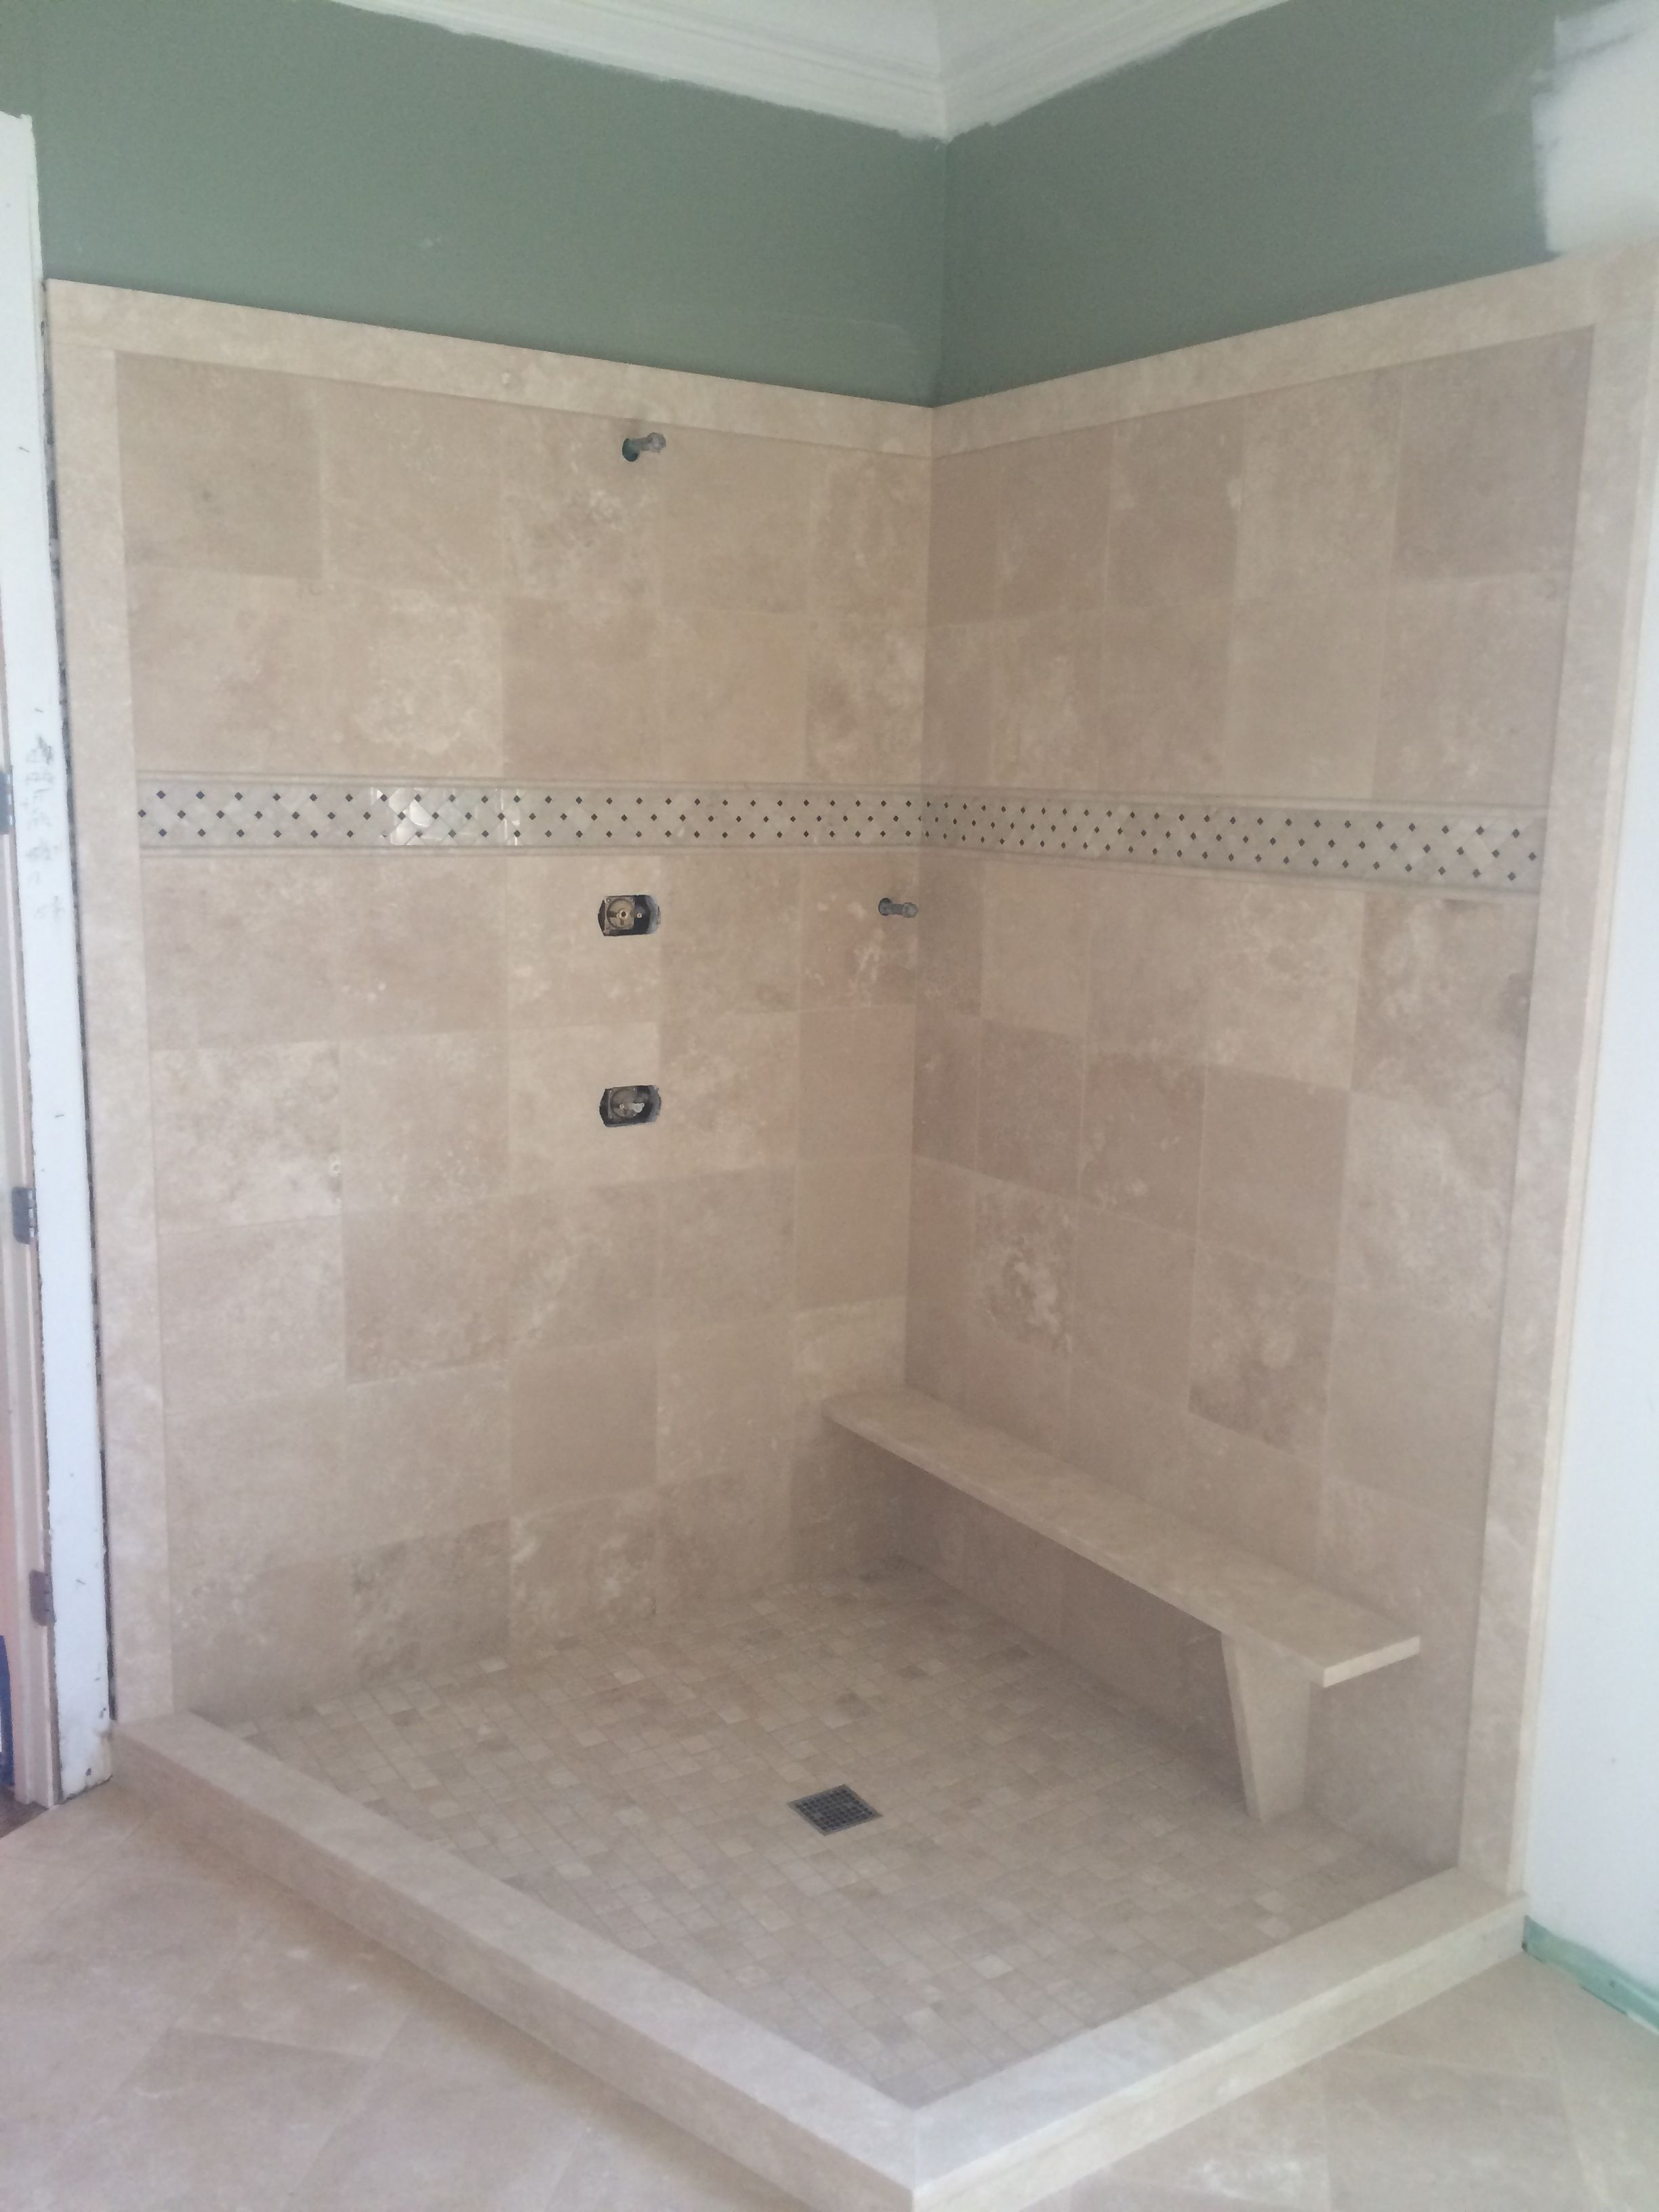 Travertine Shower Outlined With Natural Stone Travertine Slab Material And  A Floating Bench Seat For A